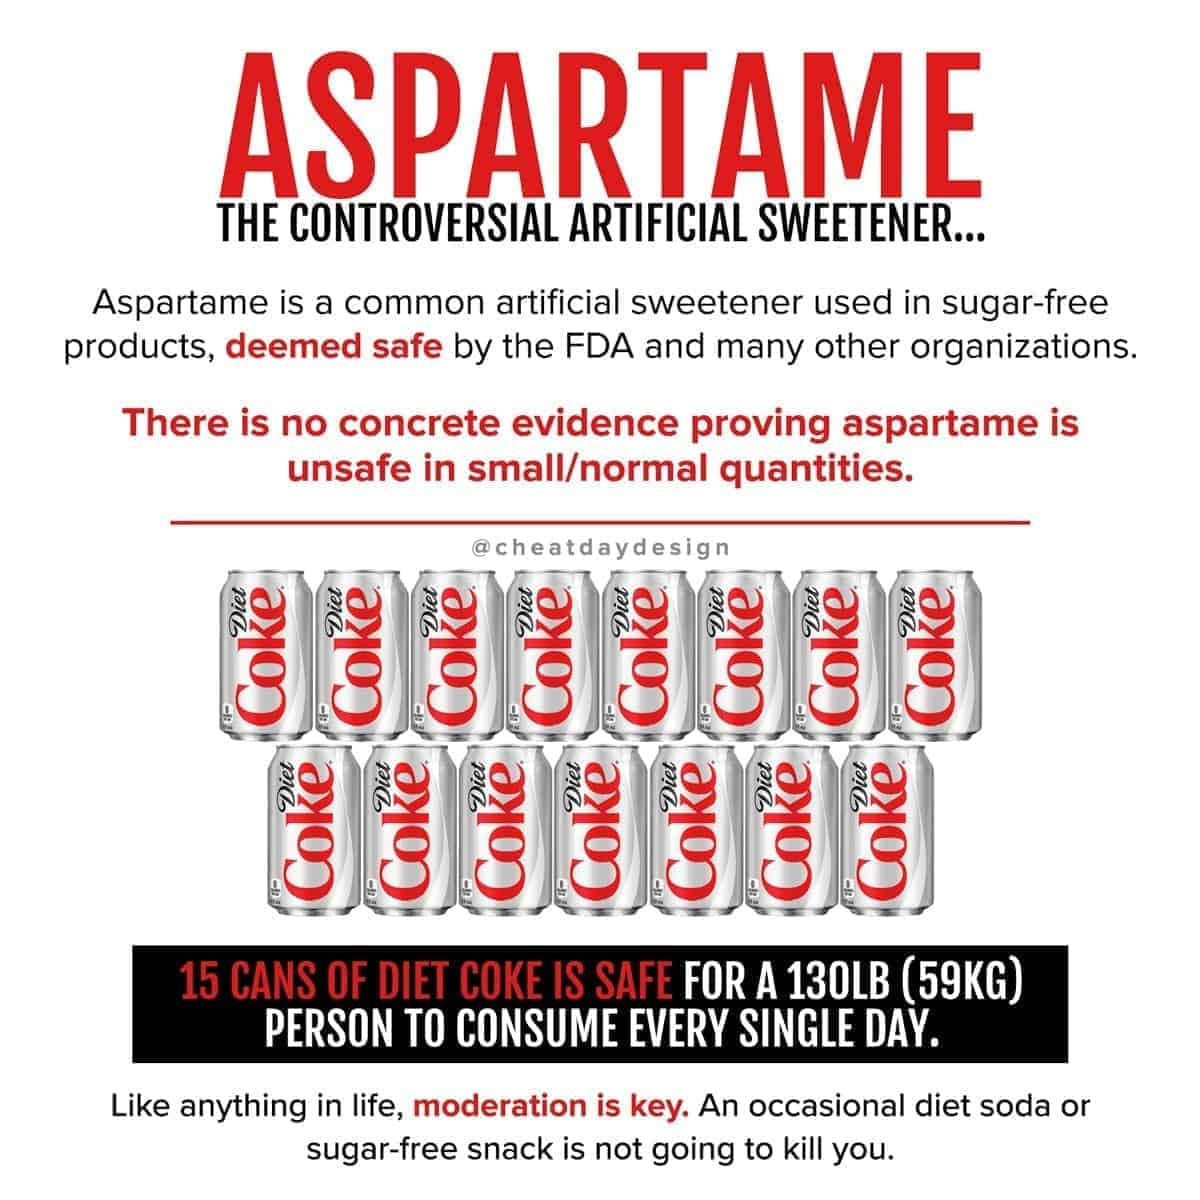 Is aspartame dangerous